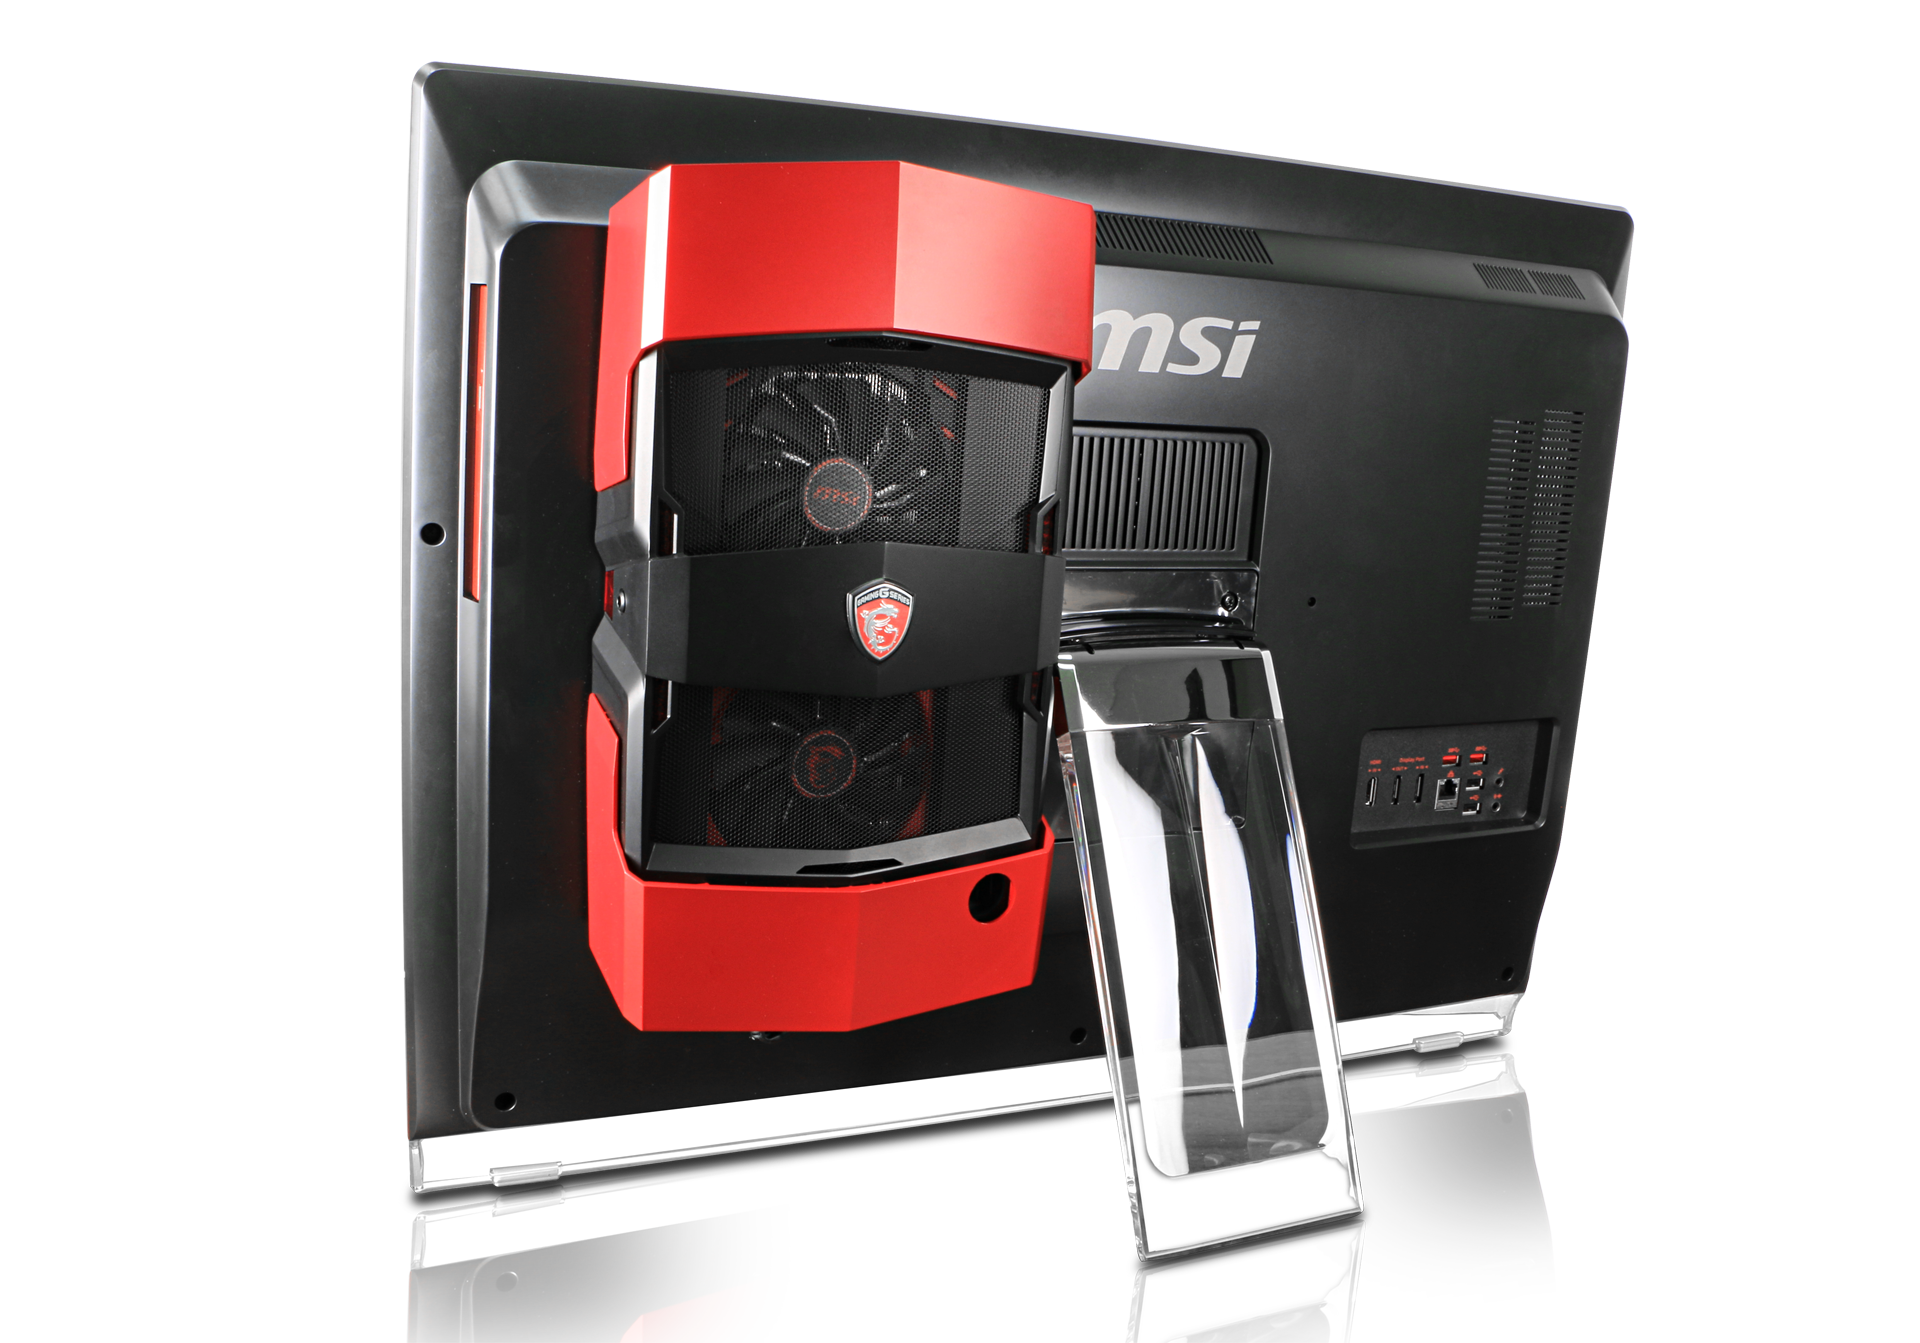 MSI announces its own take on the high-end all-in-one gaming PC